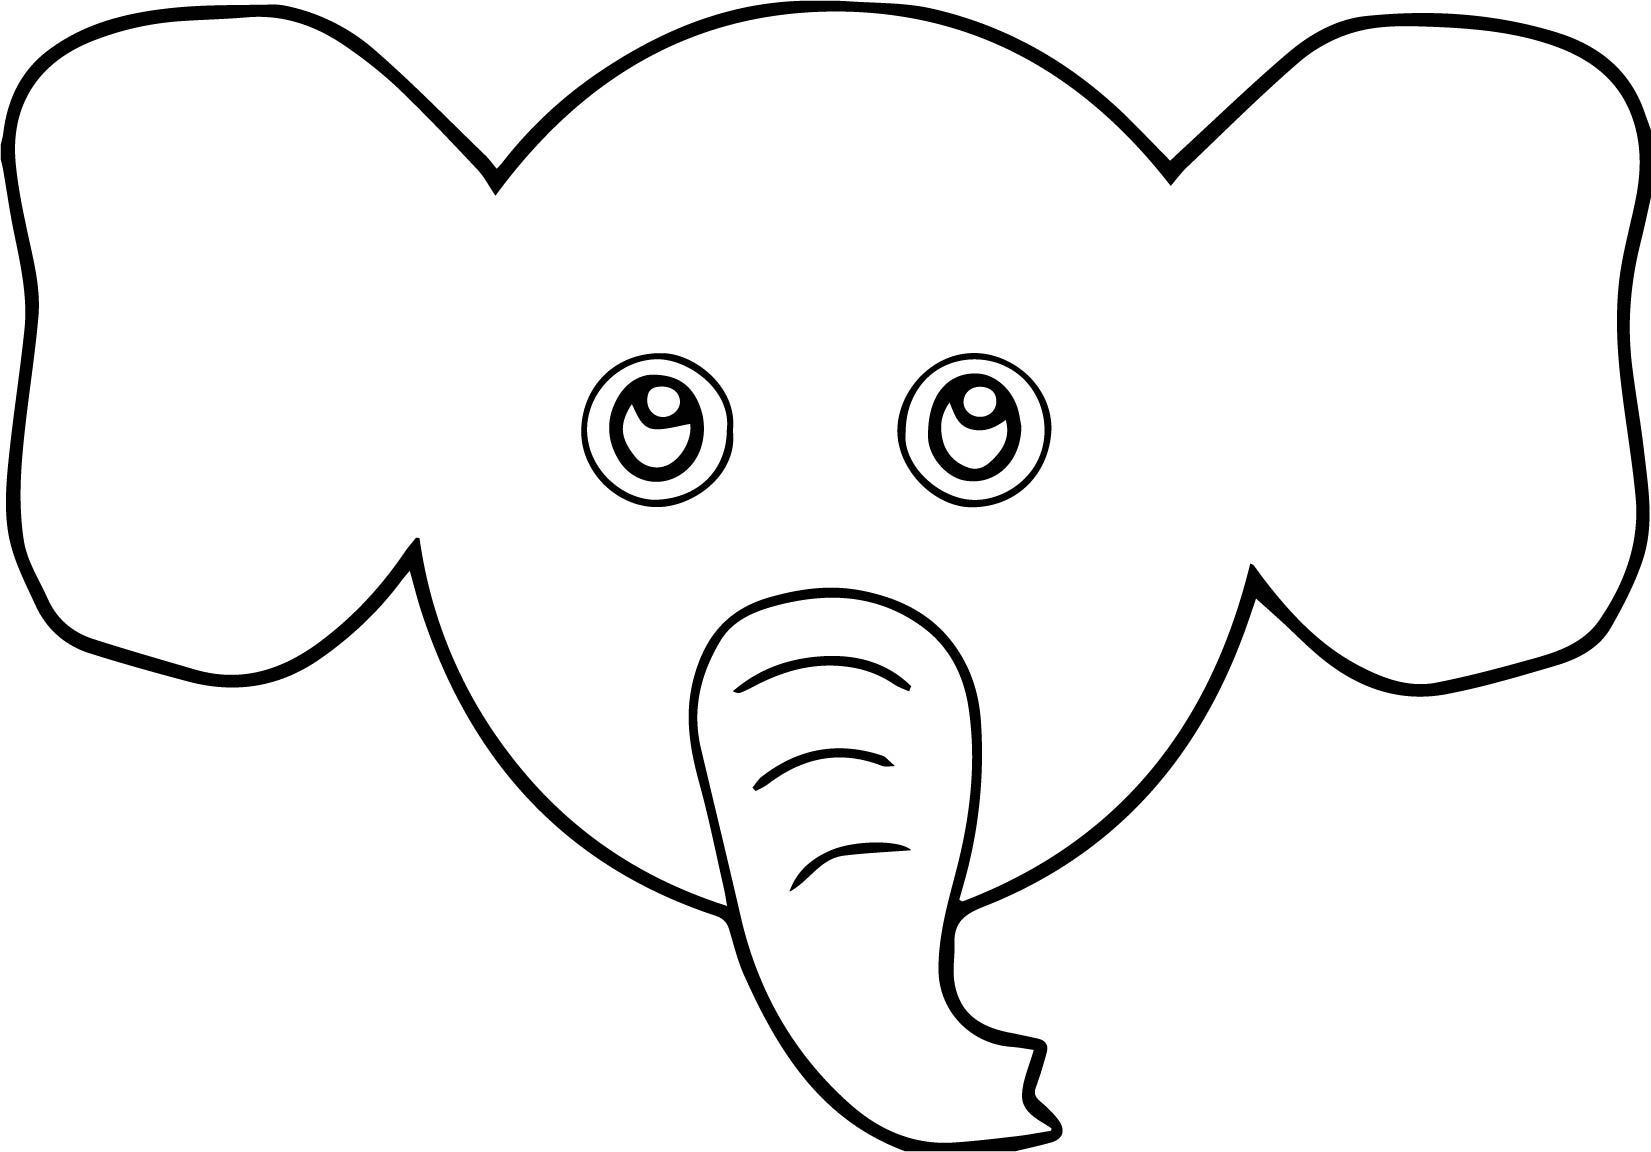 Elephant Face Cartoon Coloring Page In 2020 Cartoon Coloring Pages Elephant Face Elephant Tem In 2021 Cartoon Coloring Pages Elephant Coloring Page Lion Coloring Pages [ 1152 x 1651 Pixel ]